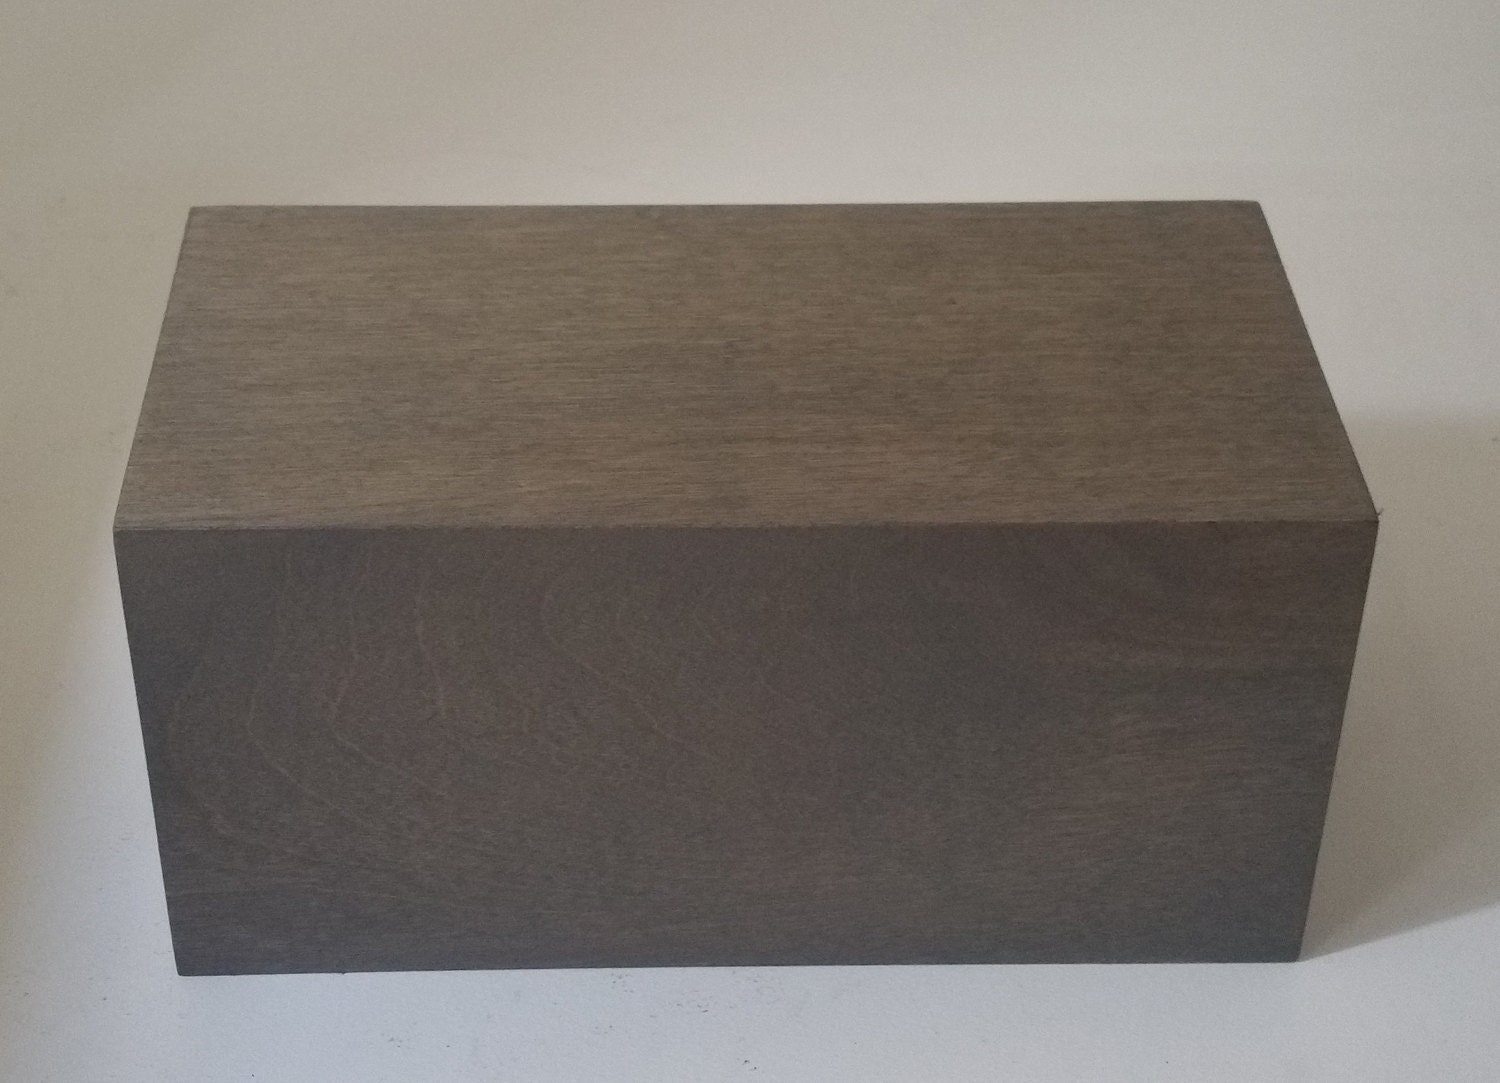 11x 5x 5 riser stained classic gray for 11x table